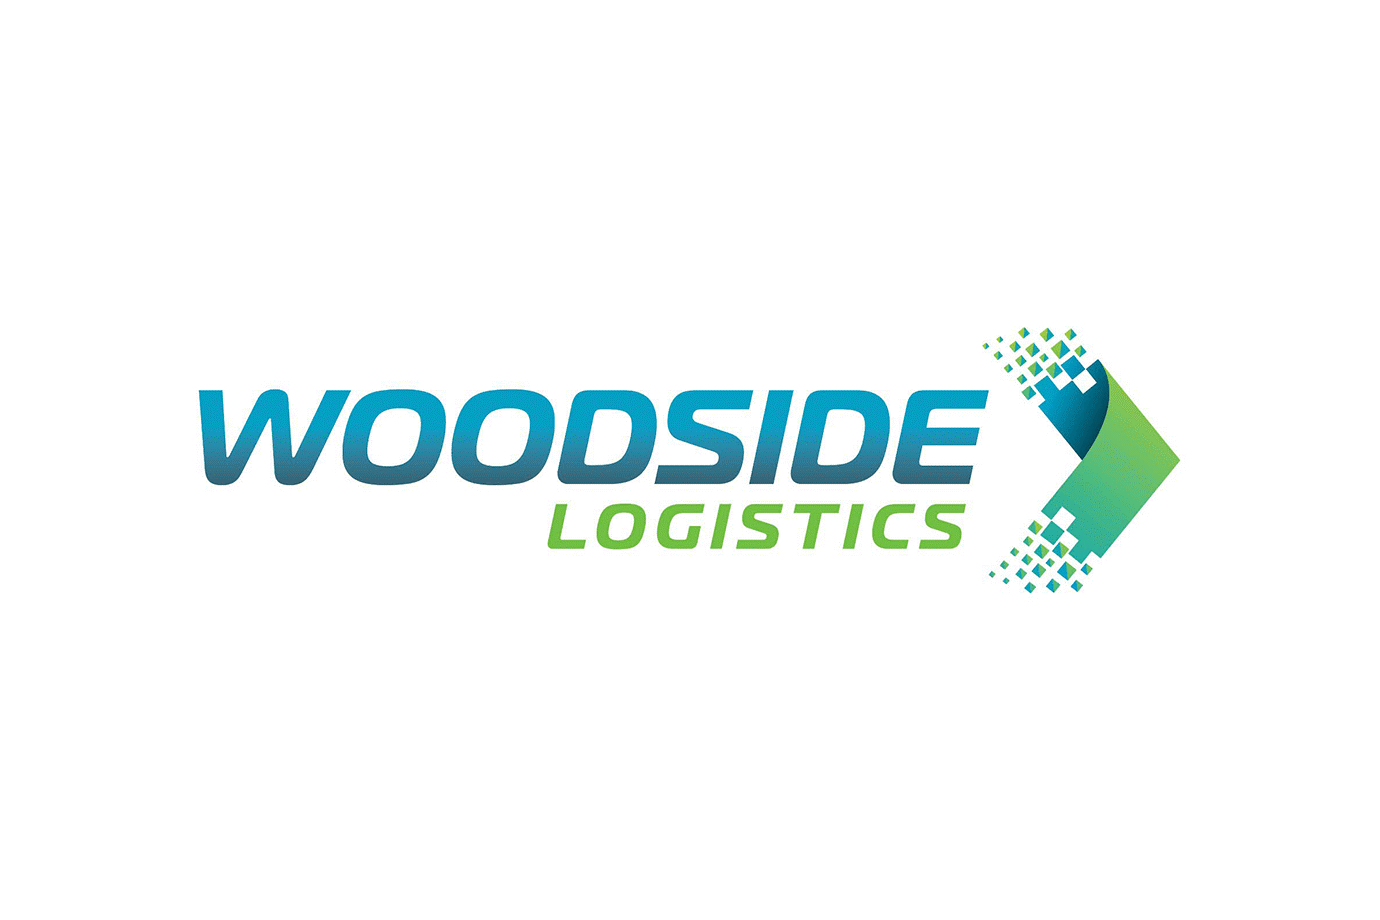 Woodside Logistics